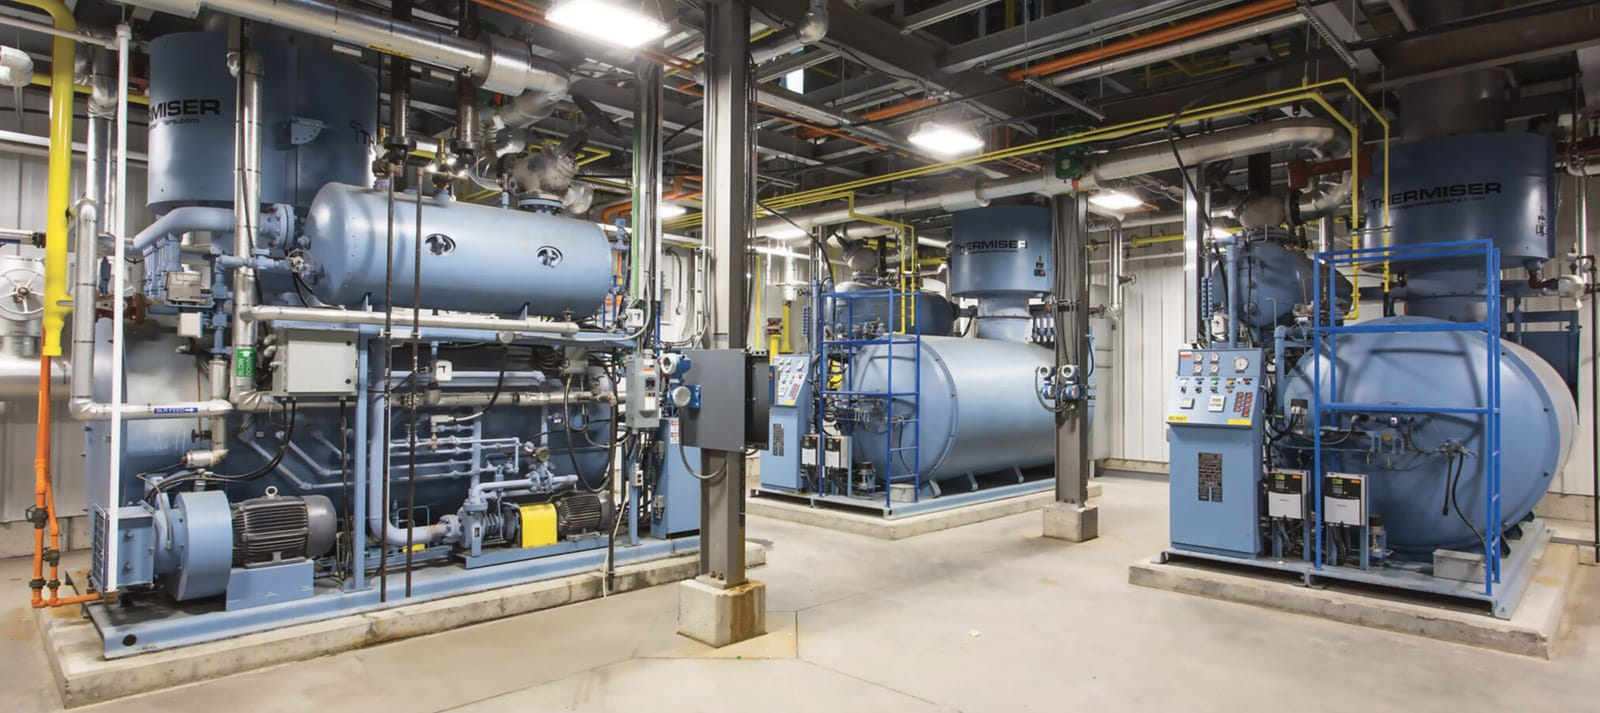 Thermogenics Boilers Inc. - News